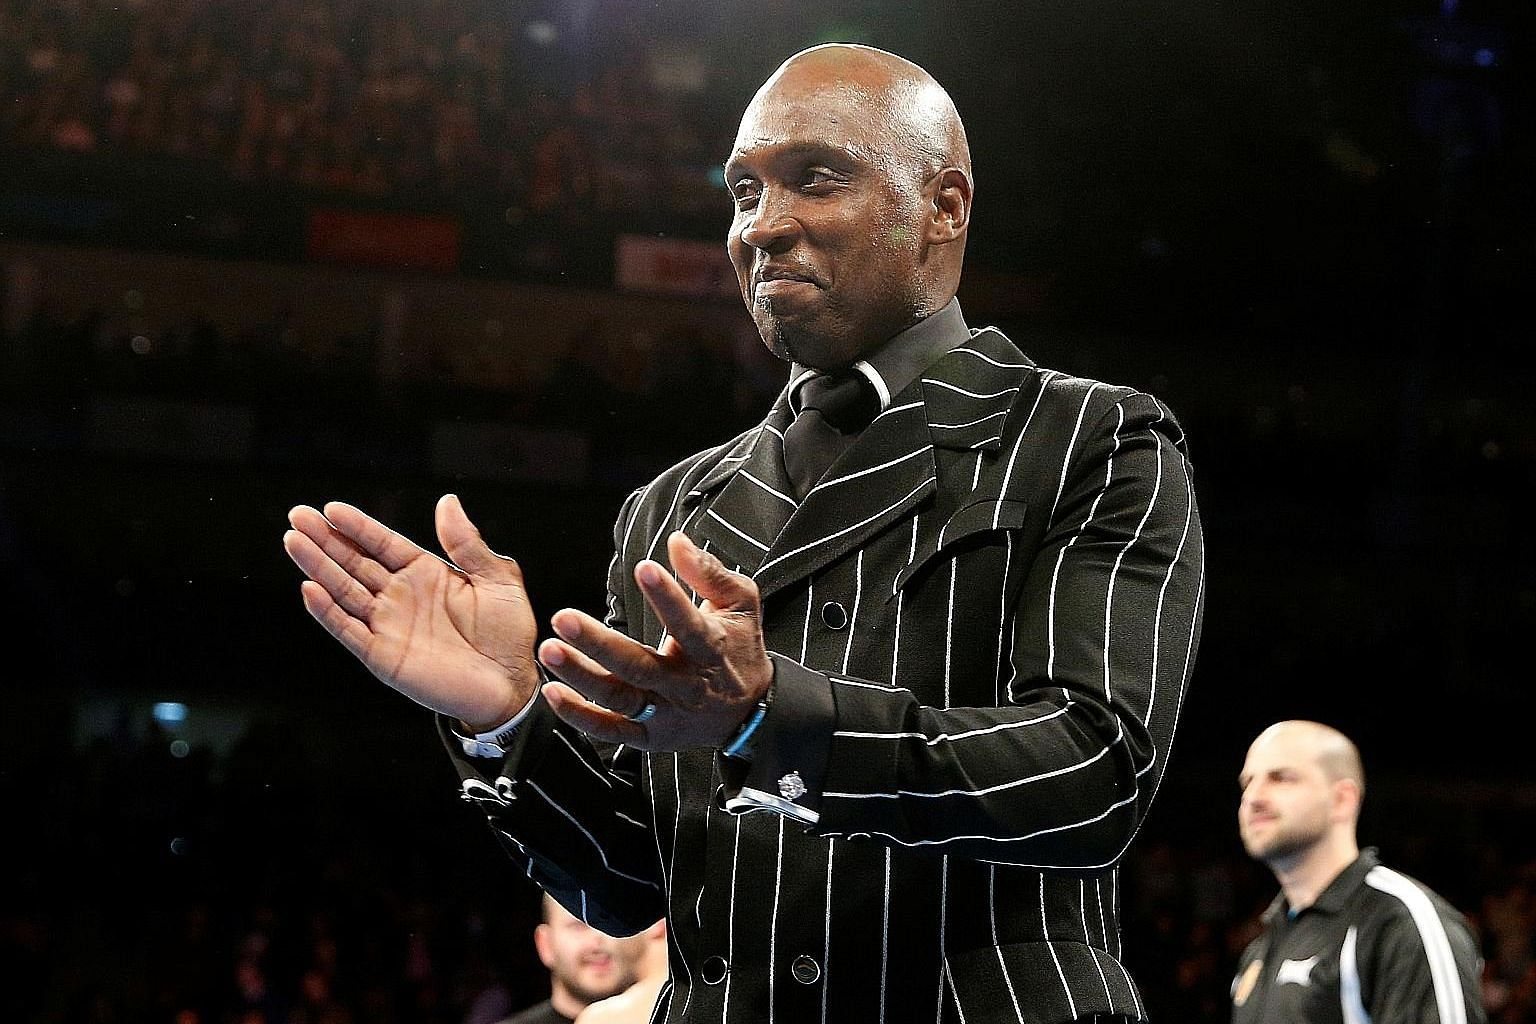 Nigel Benn, 55, will be fighting Sakio Bika, 40, on Nov 23 in his first bout in 23 years. PHOTO: REUTERS